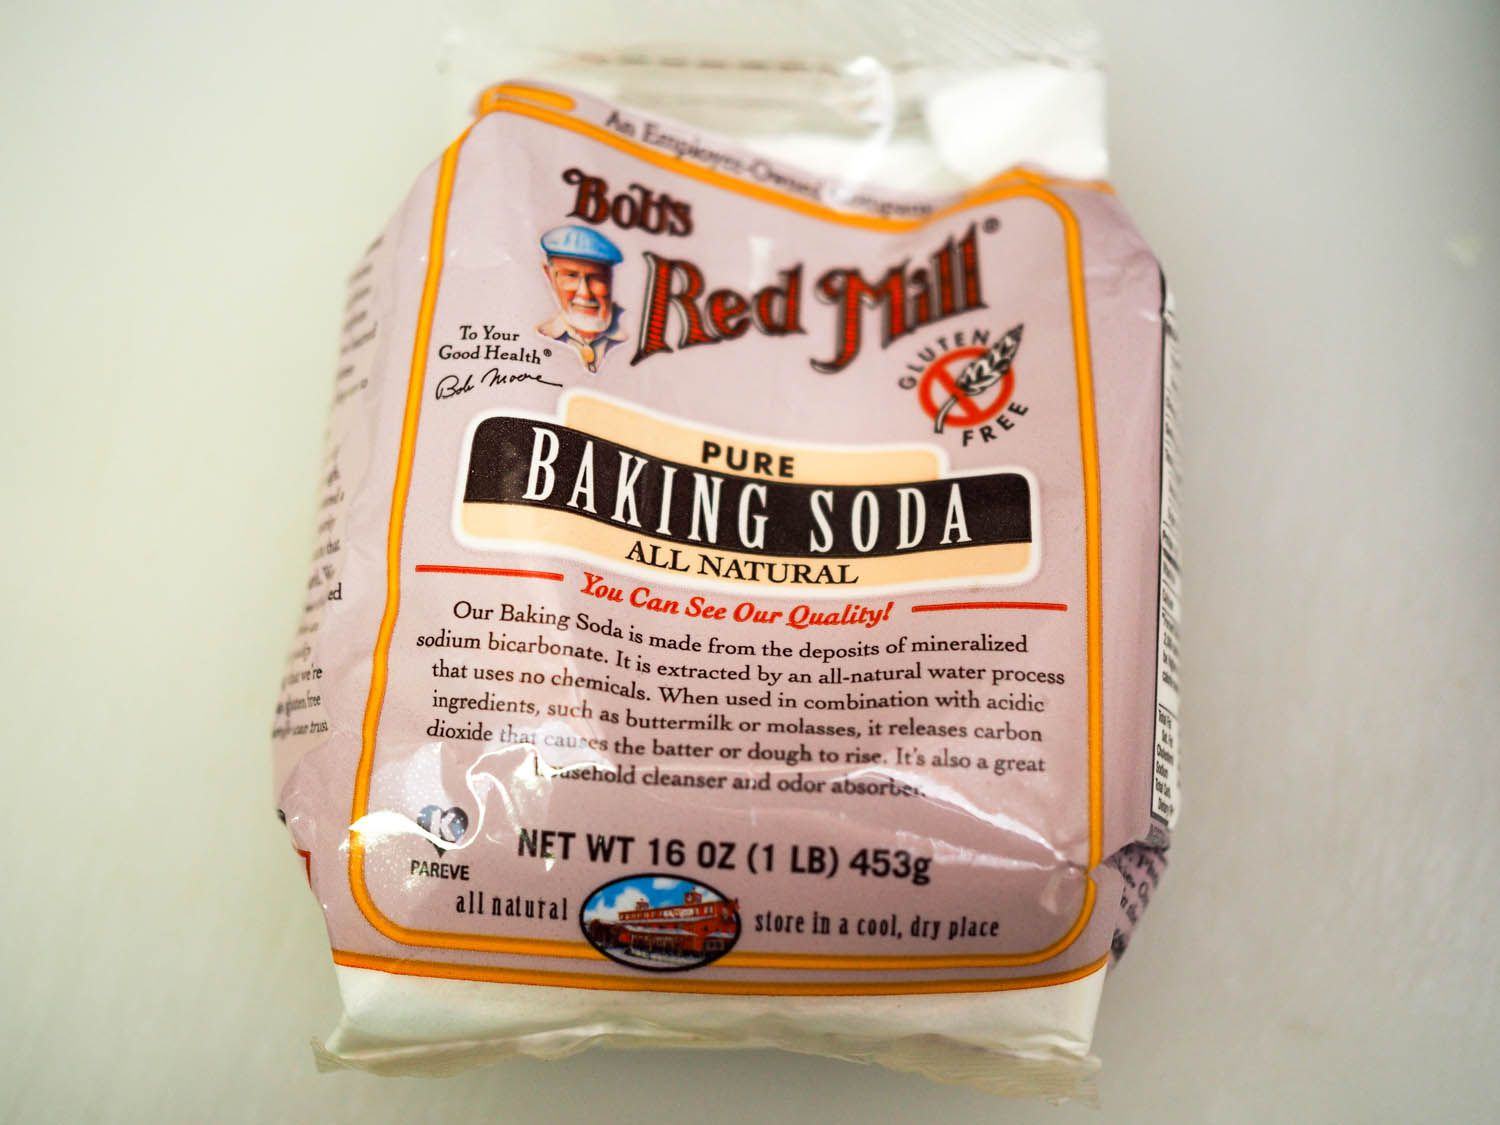 A bag of Bob's Red Mill baking soda.